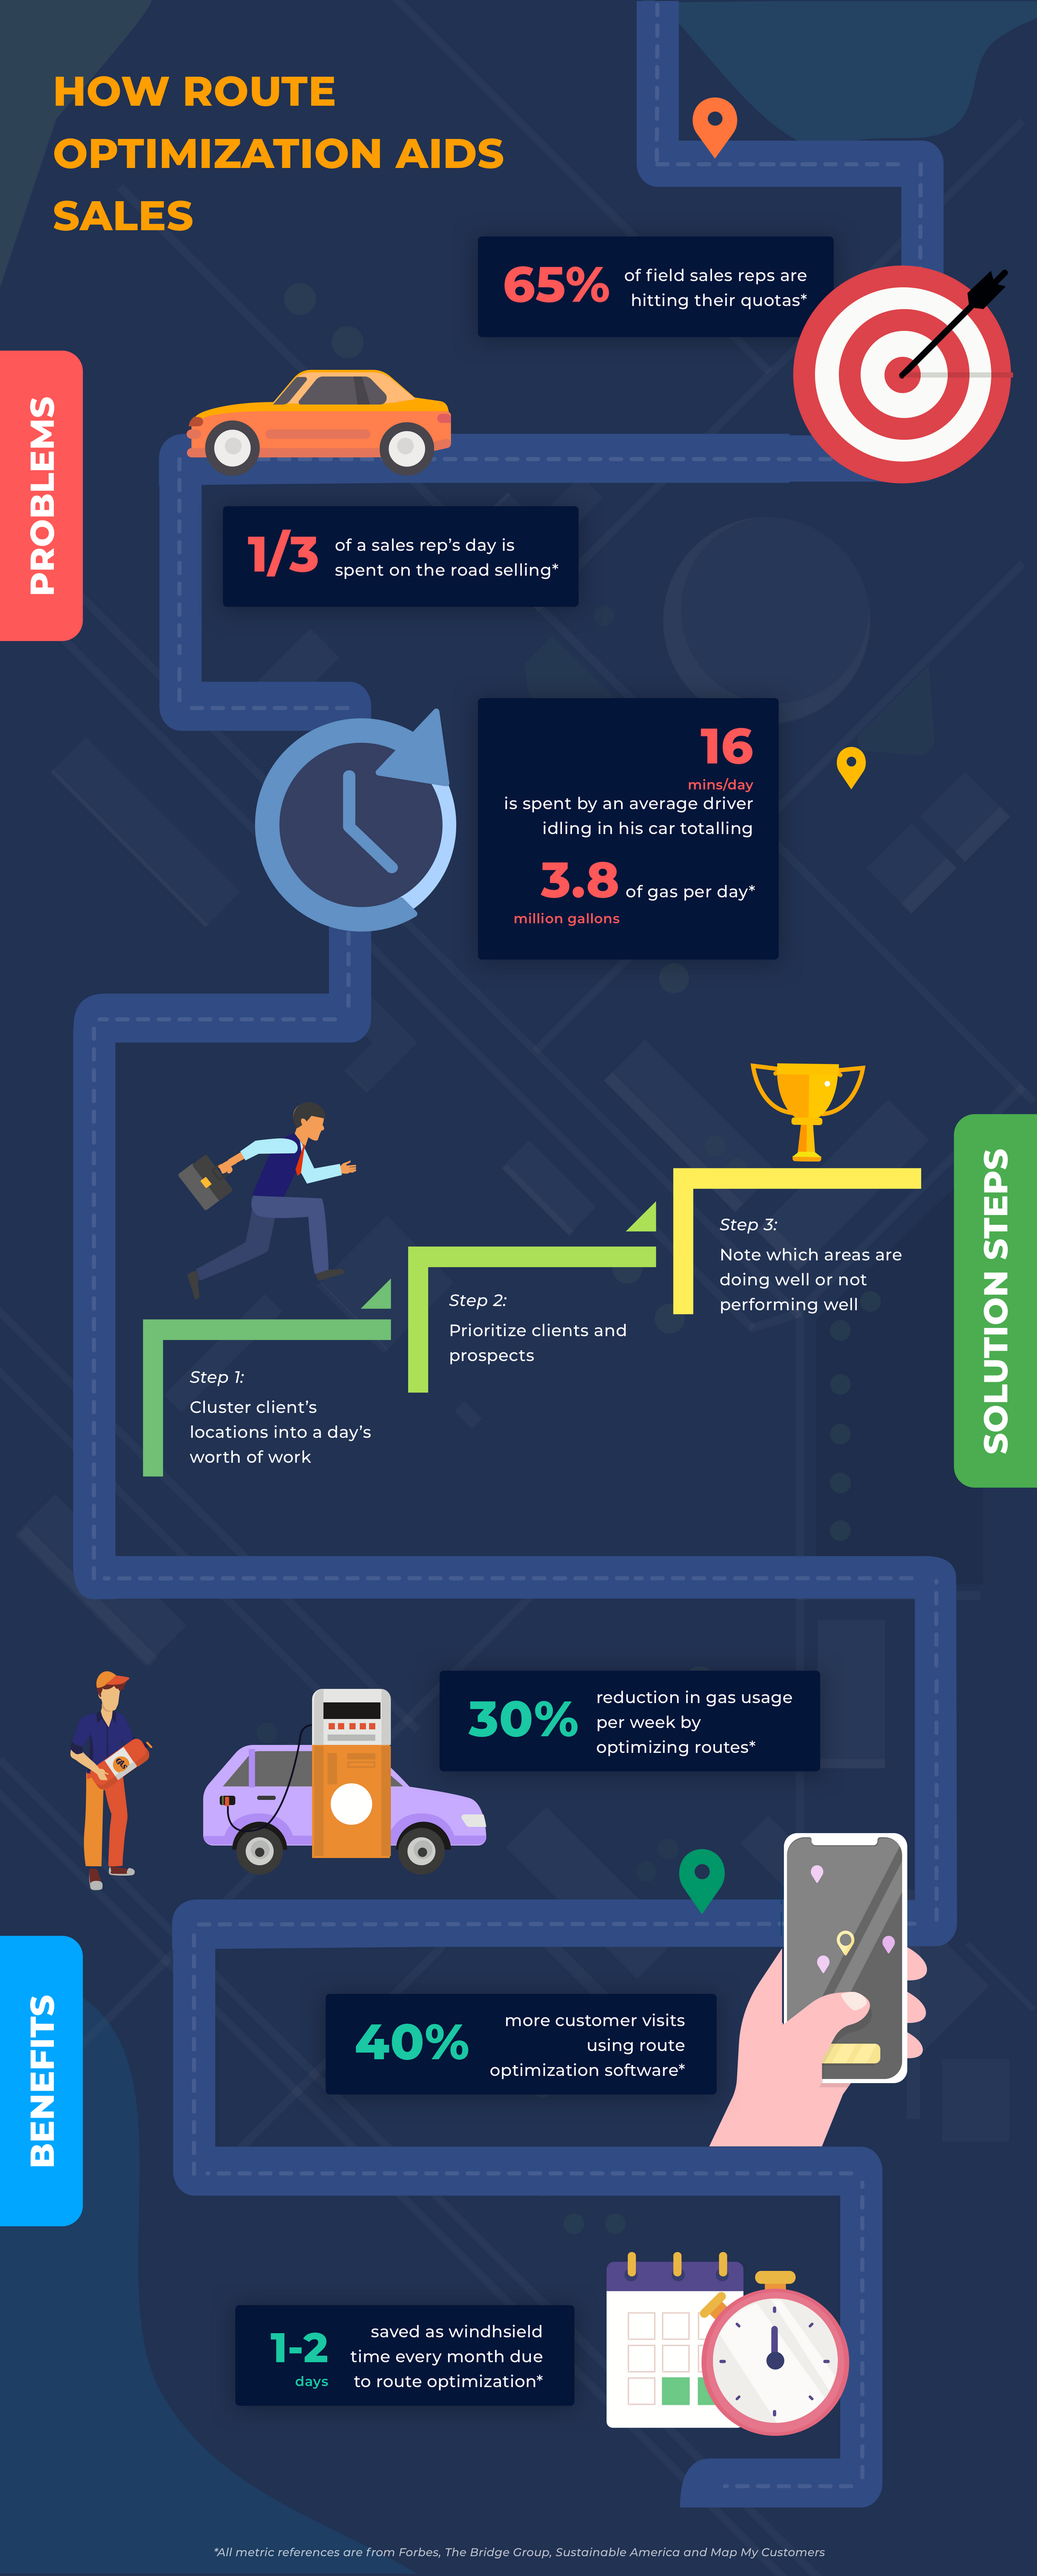 Benefits of Route Optimization For Your Sales Team [Infographic] on map sf 5k route, mapping a route, map my trip, map my city, map my drives, map my run, map my state, map of my land, map out a route trip, map my distance, map my name, map my place, plan my route, chart my route,